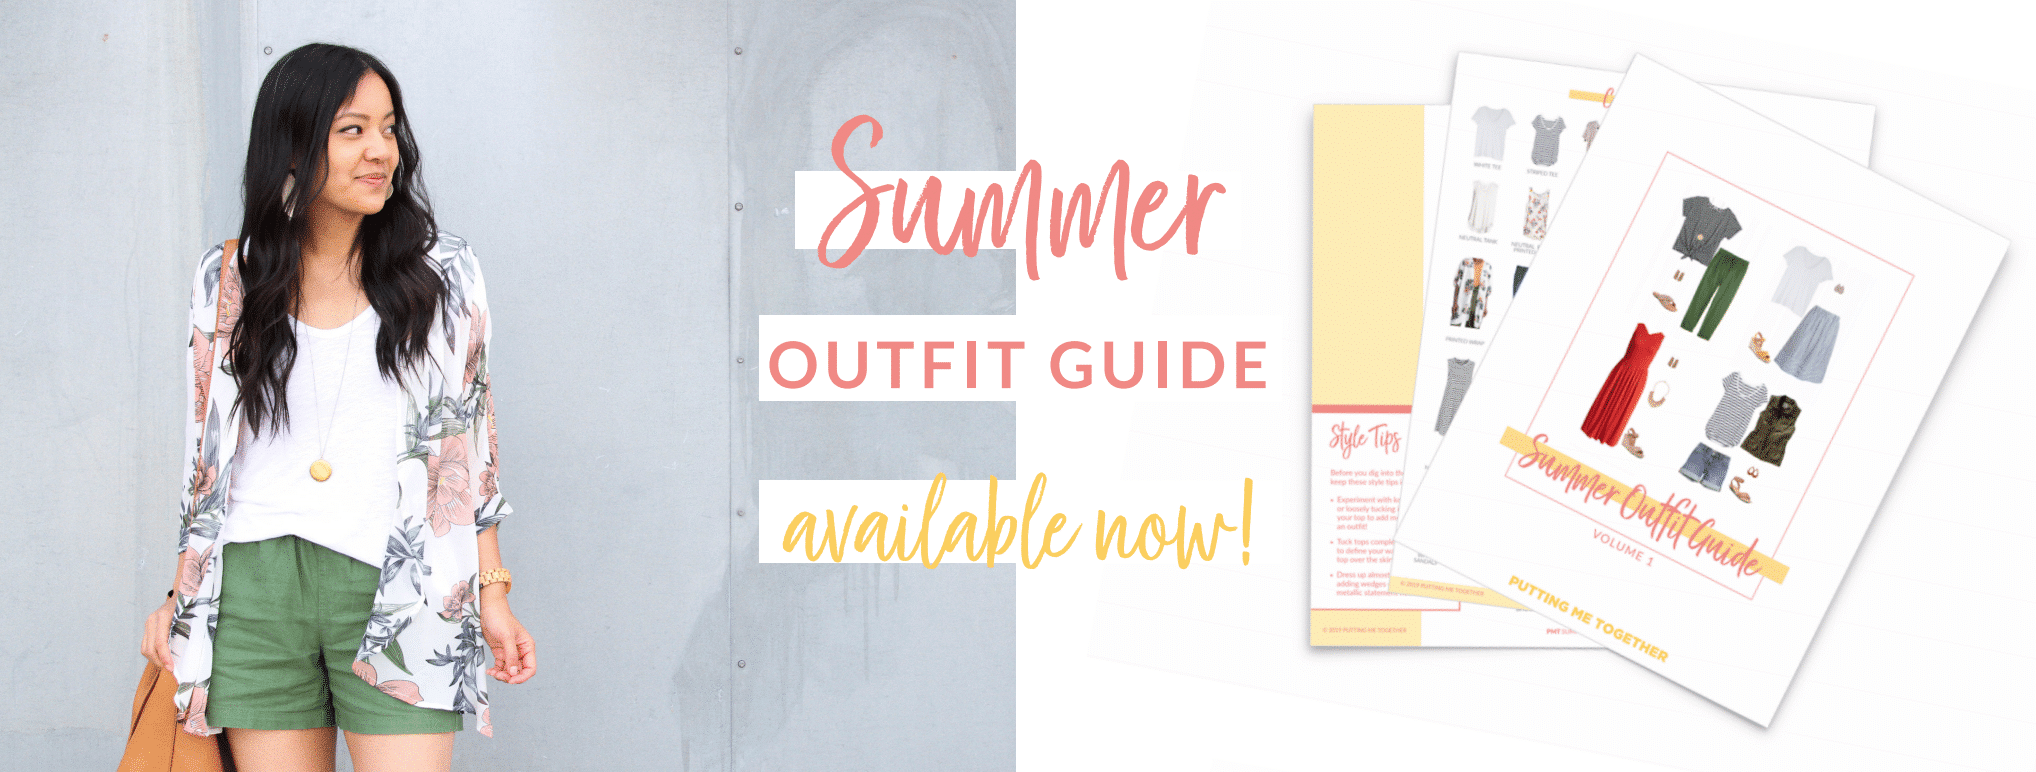 Summer Outfit Guide: 70+ Outfits From a Small Capsule Wardrobe